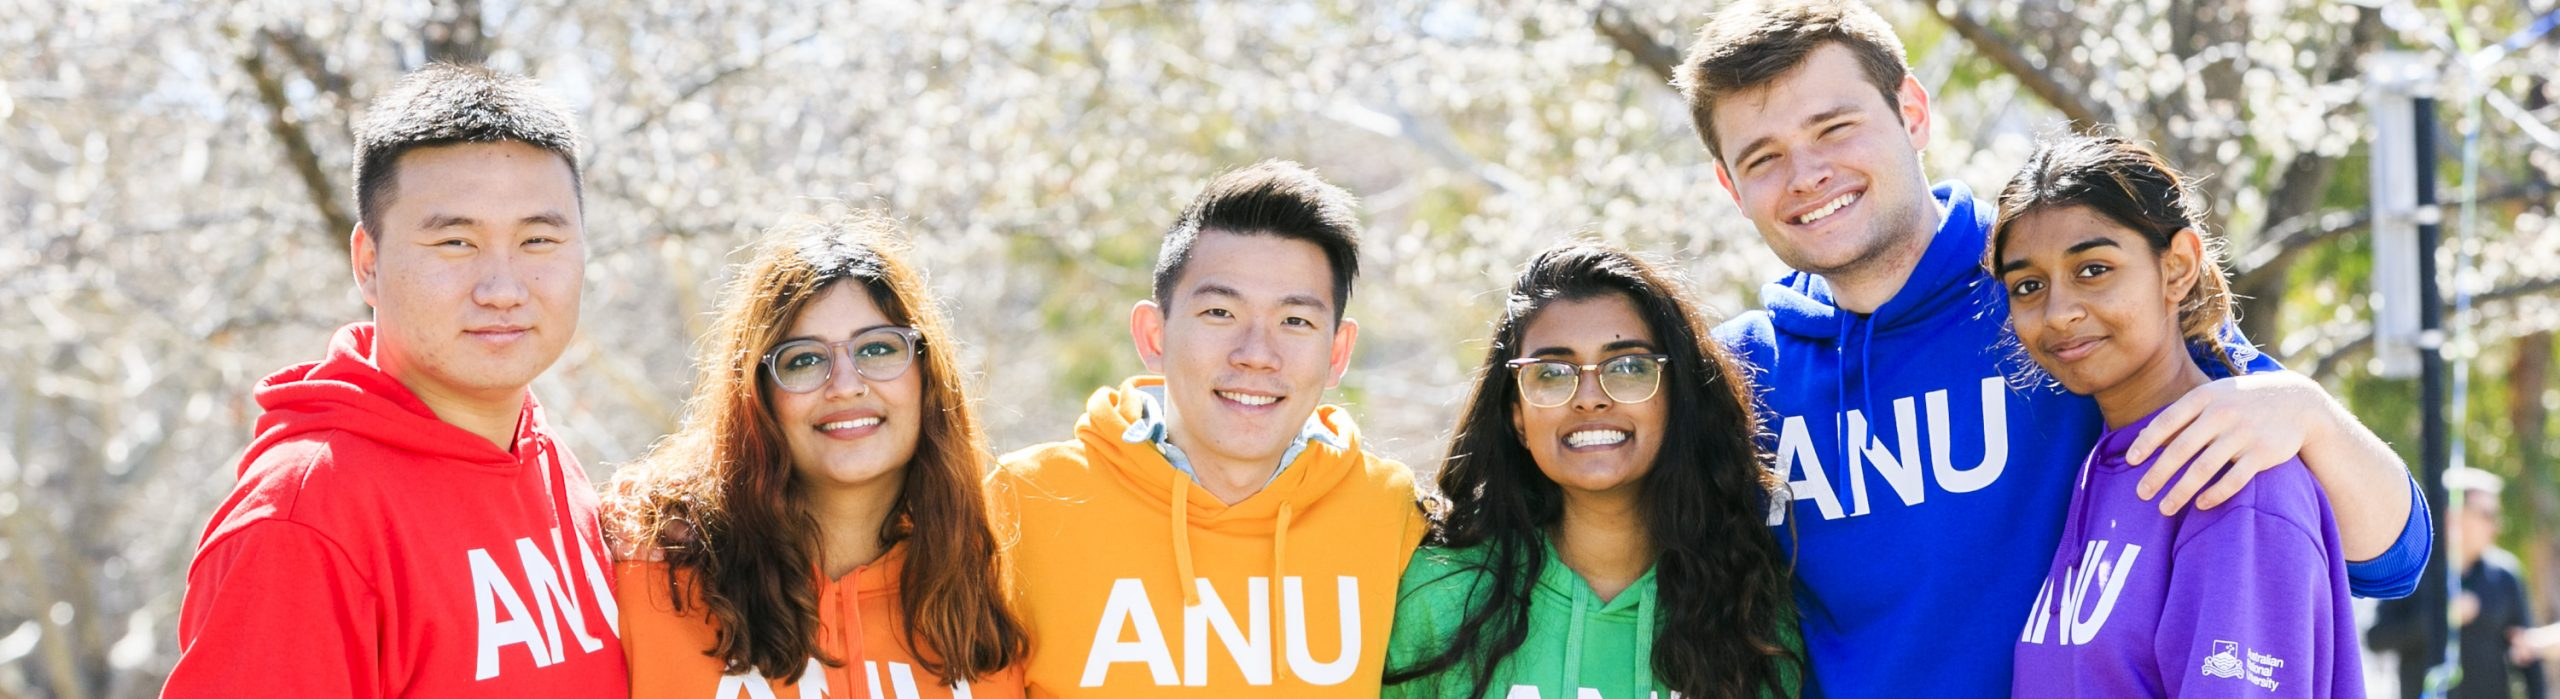 ANU Educational Fellowship Scheme